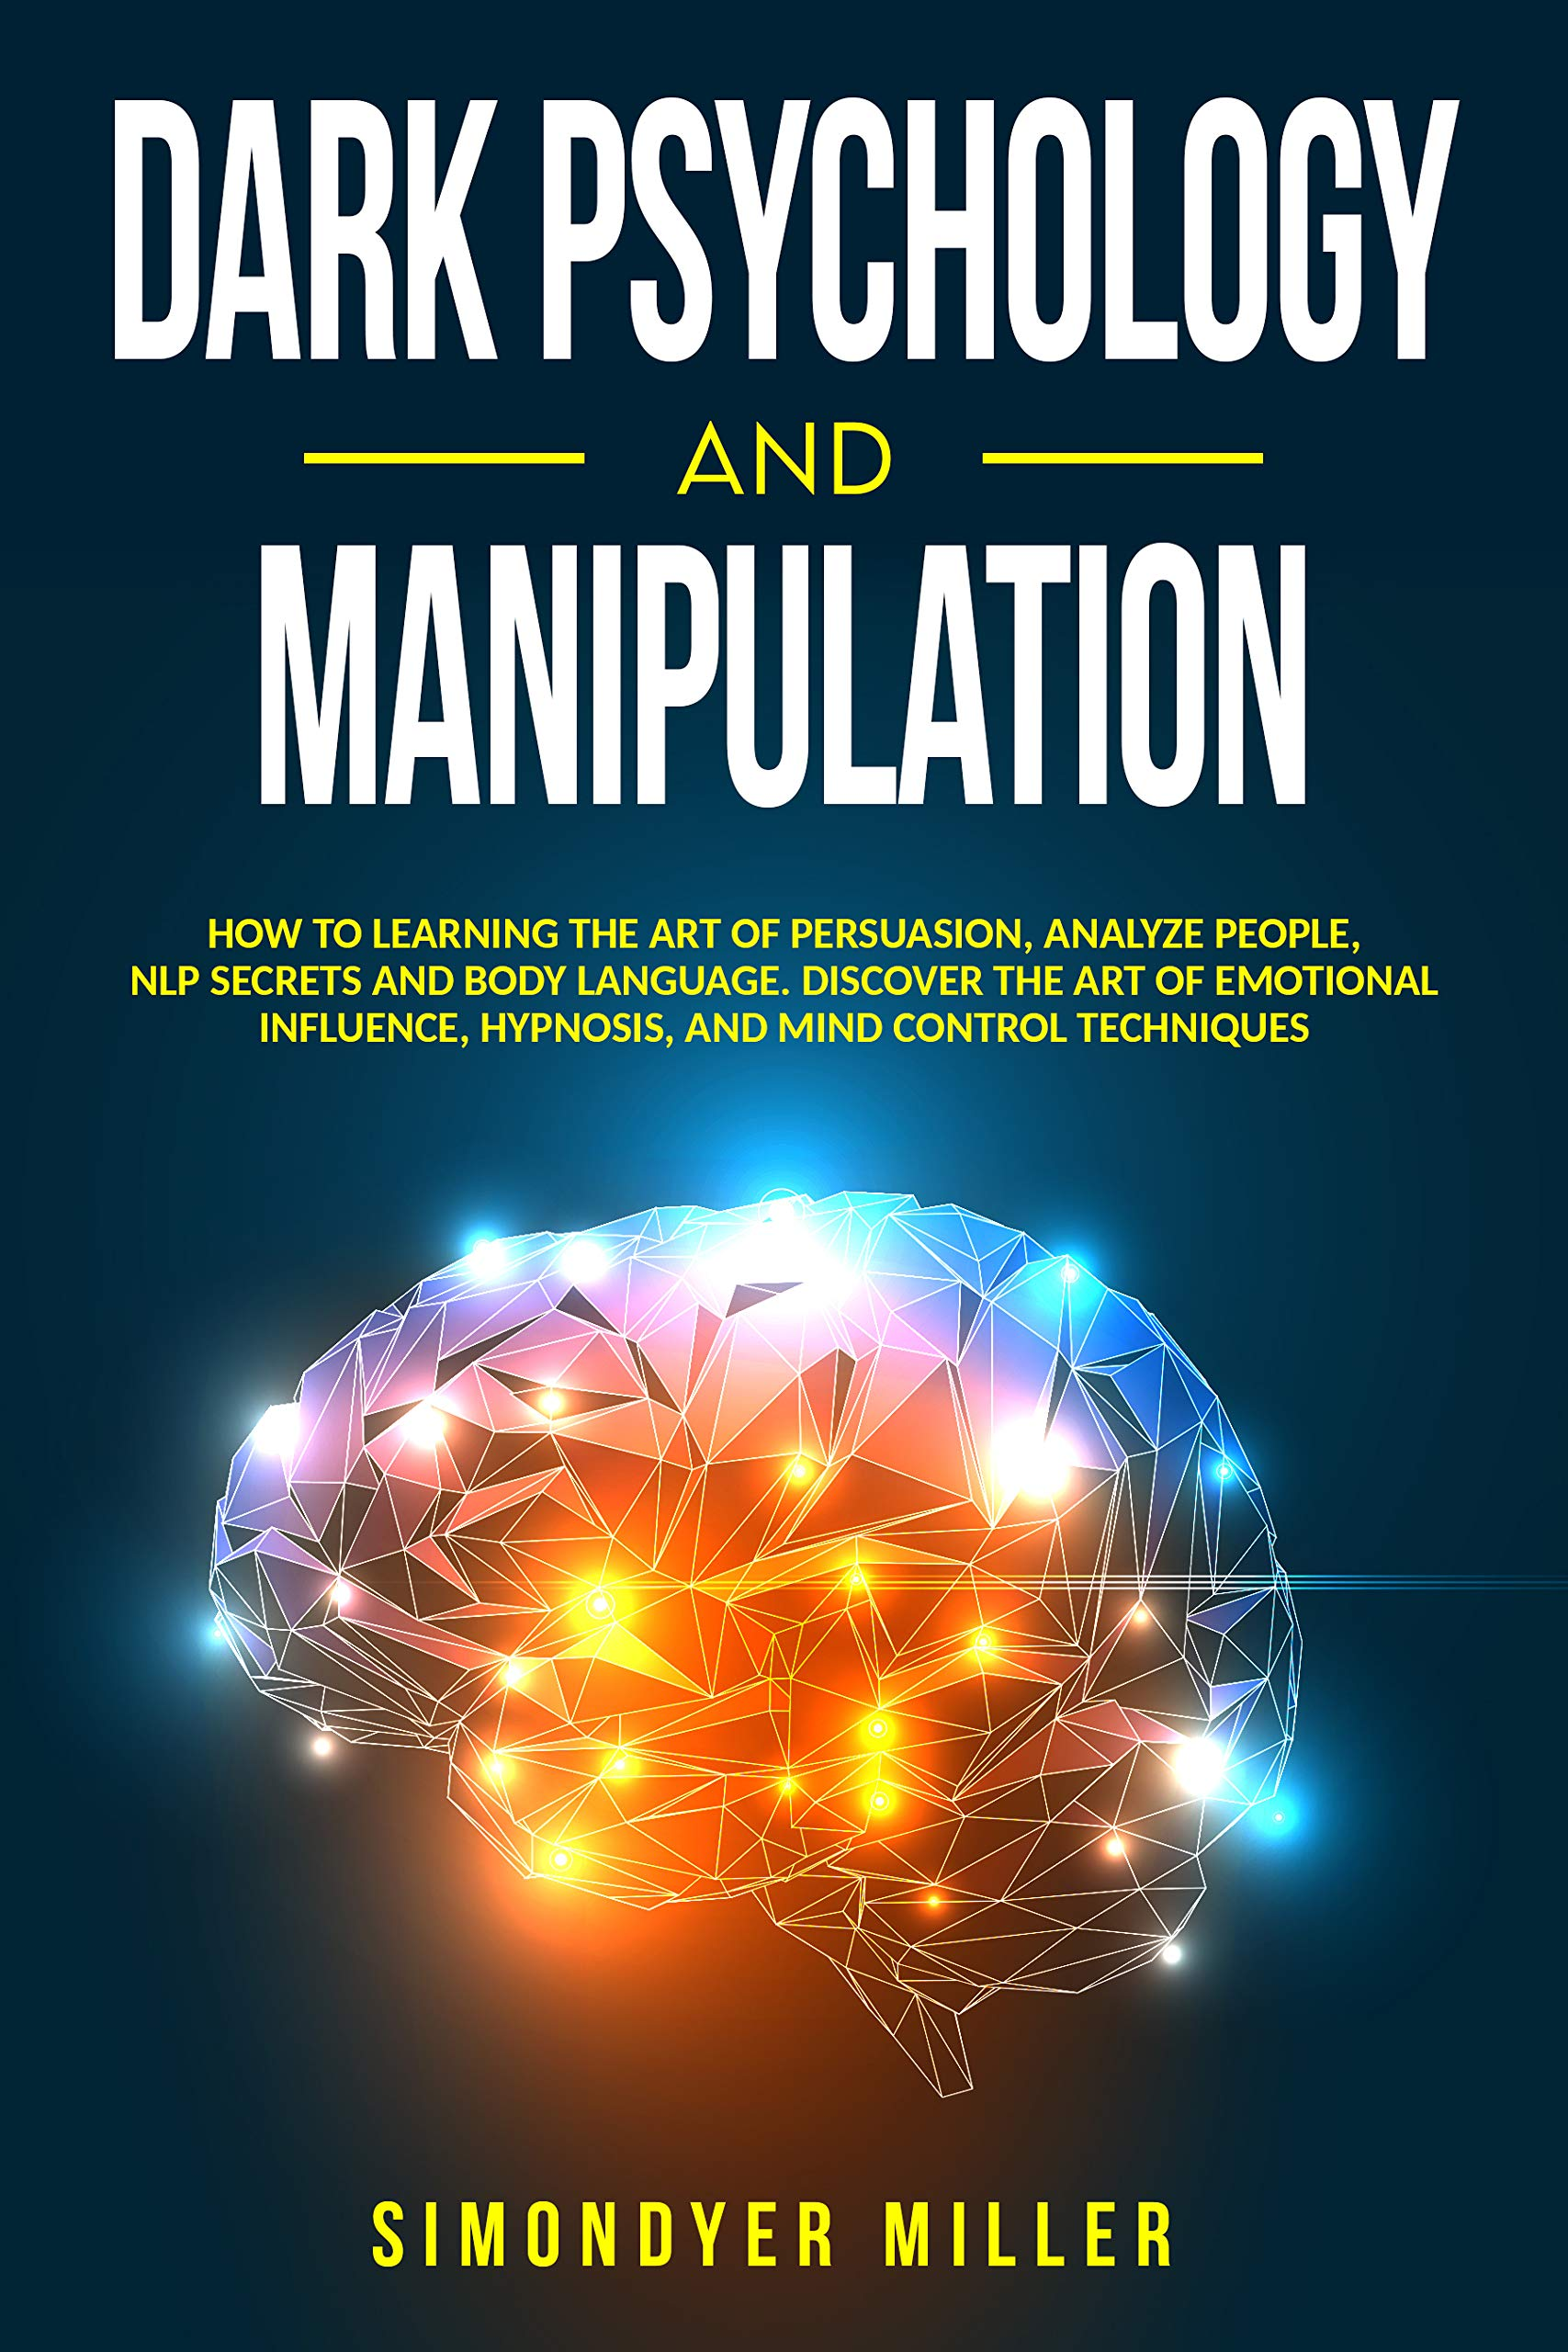 Dark Psychology and Manipulation: How to Learning the Art of Persuasion, Analyze People, NLP Secrets and Body Language. Discover the Art of Emotional Influence, Hypnosis, and Mind Control Techniques